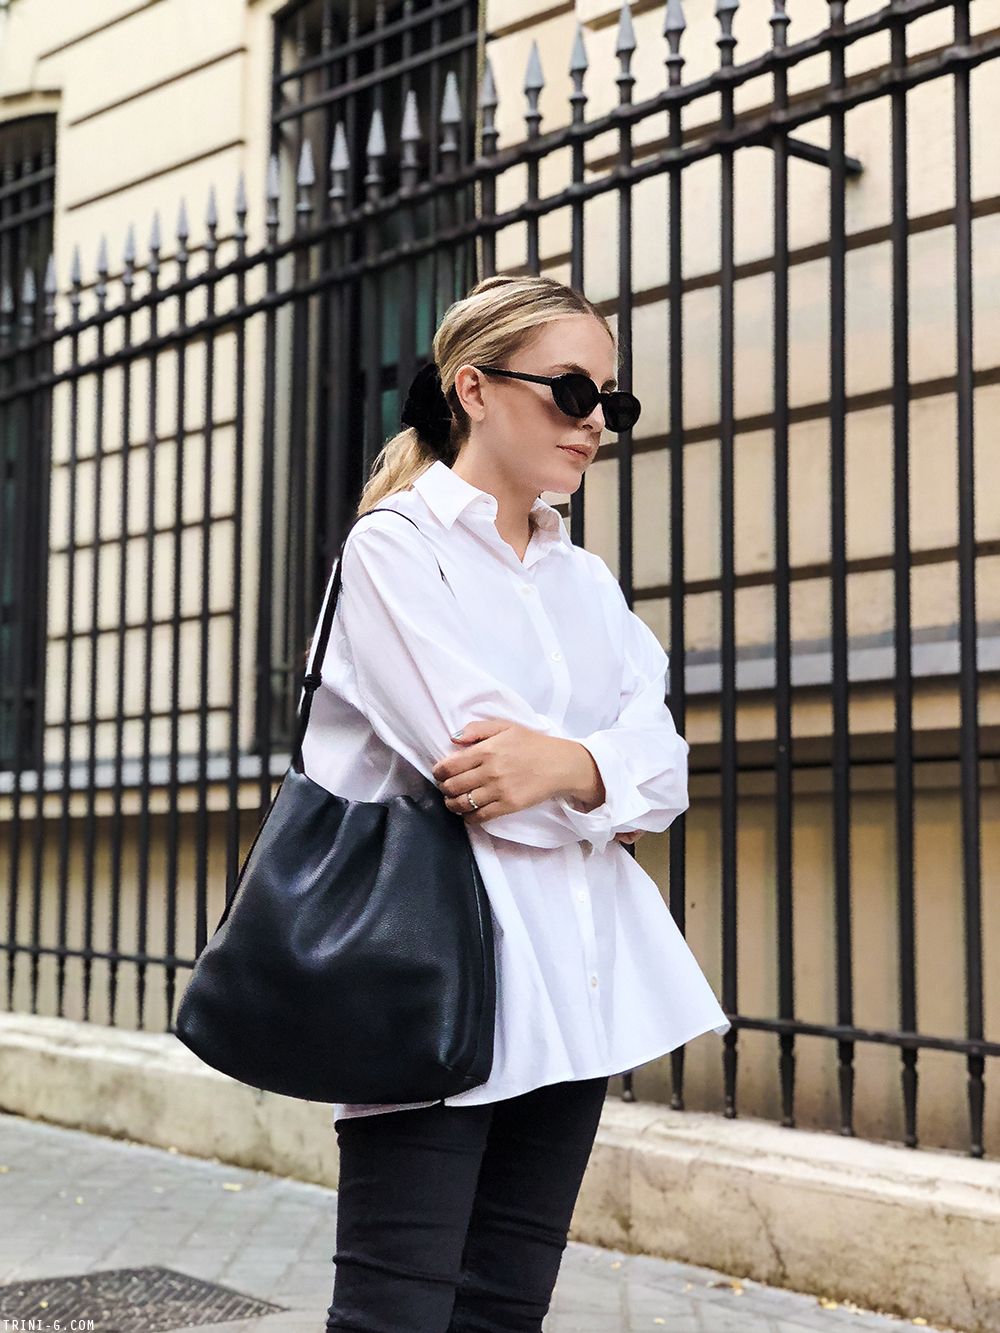 Trini | The Row shirt Balenciaga sunglasses Chanel flat slingbacks